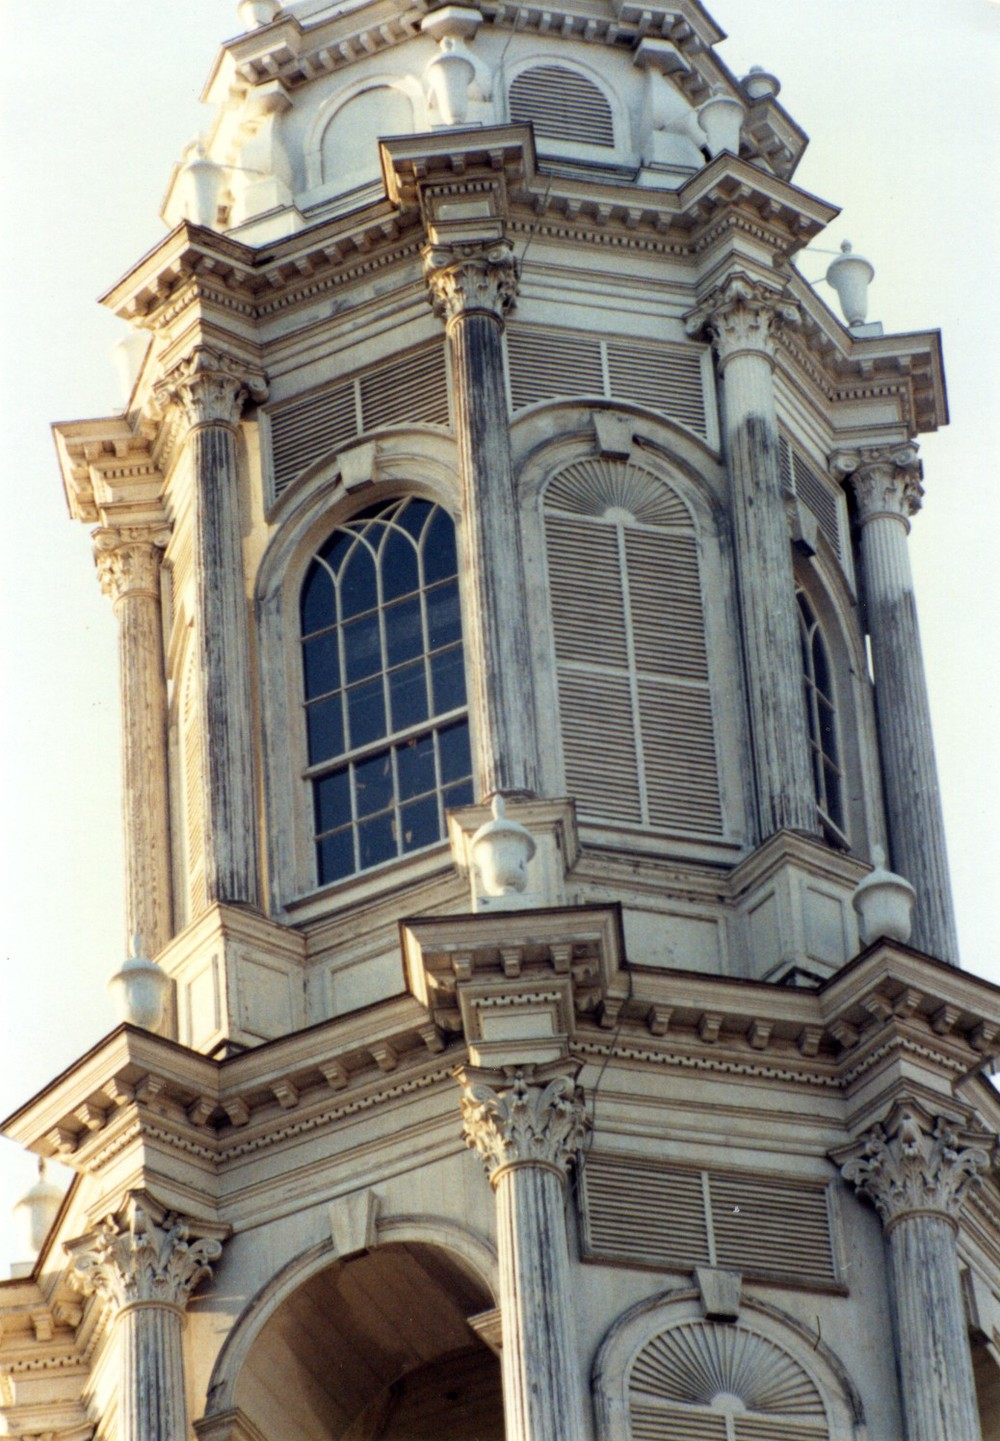 Renovation of a grand multi-cupola steeple